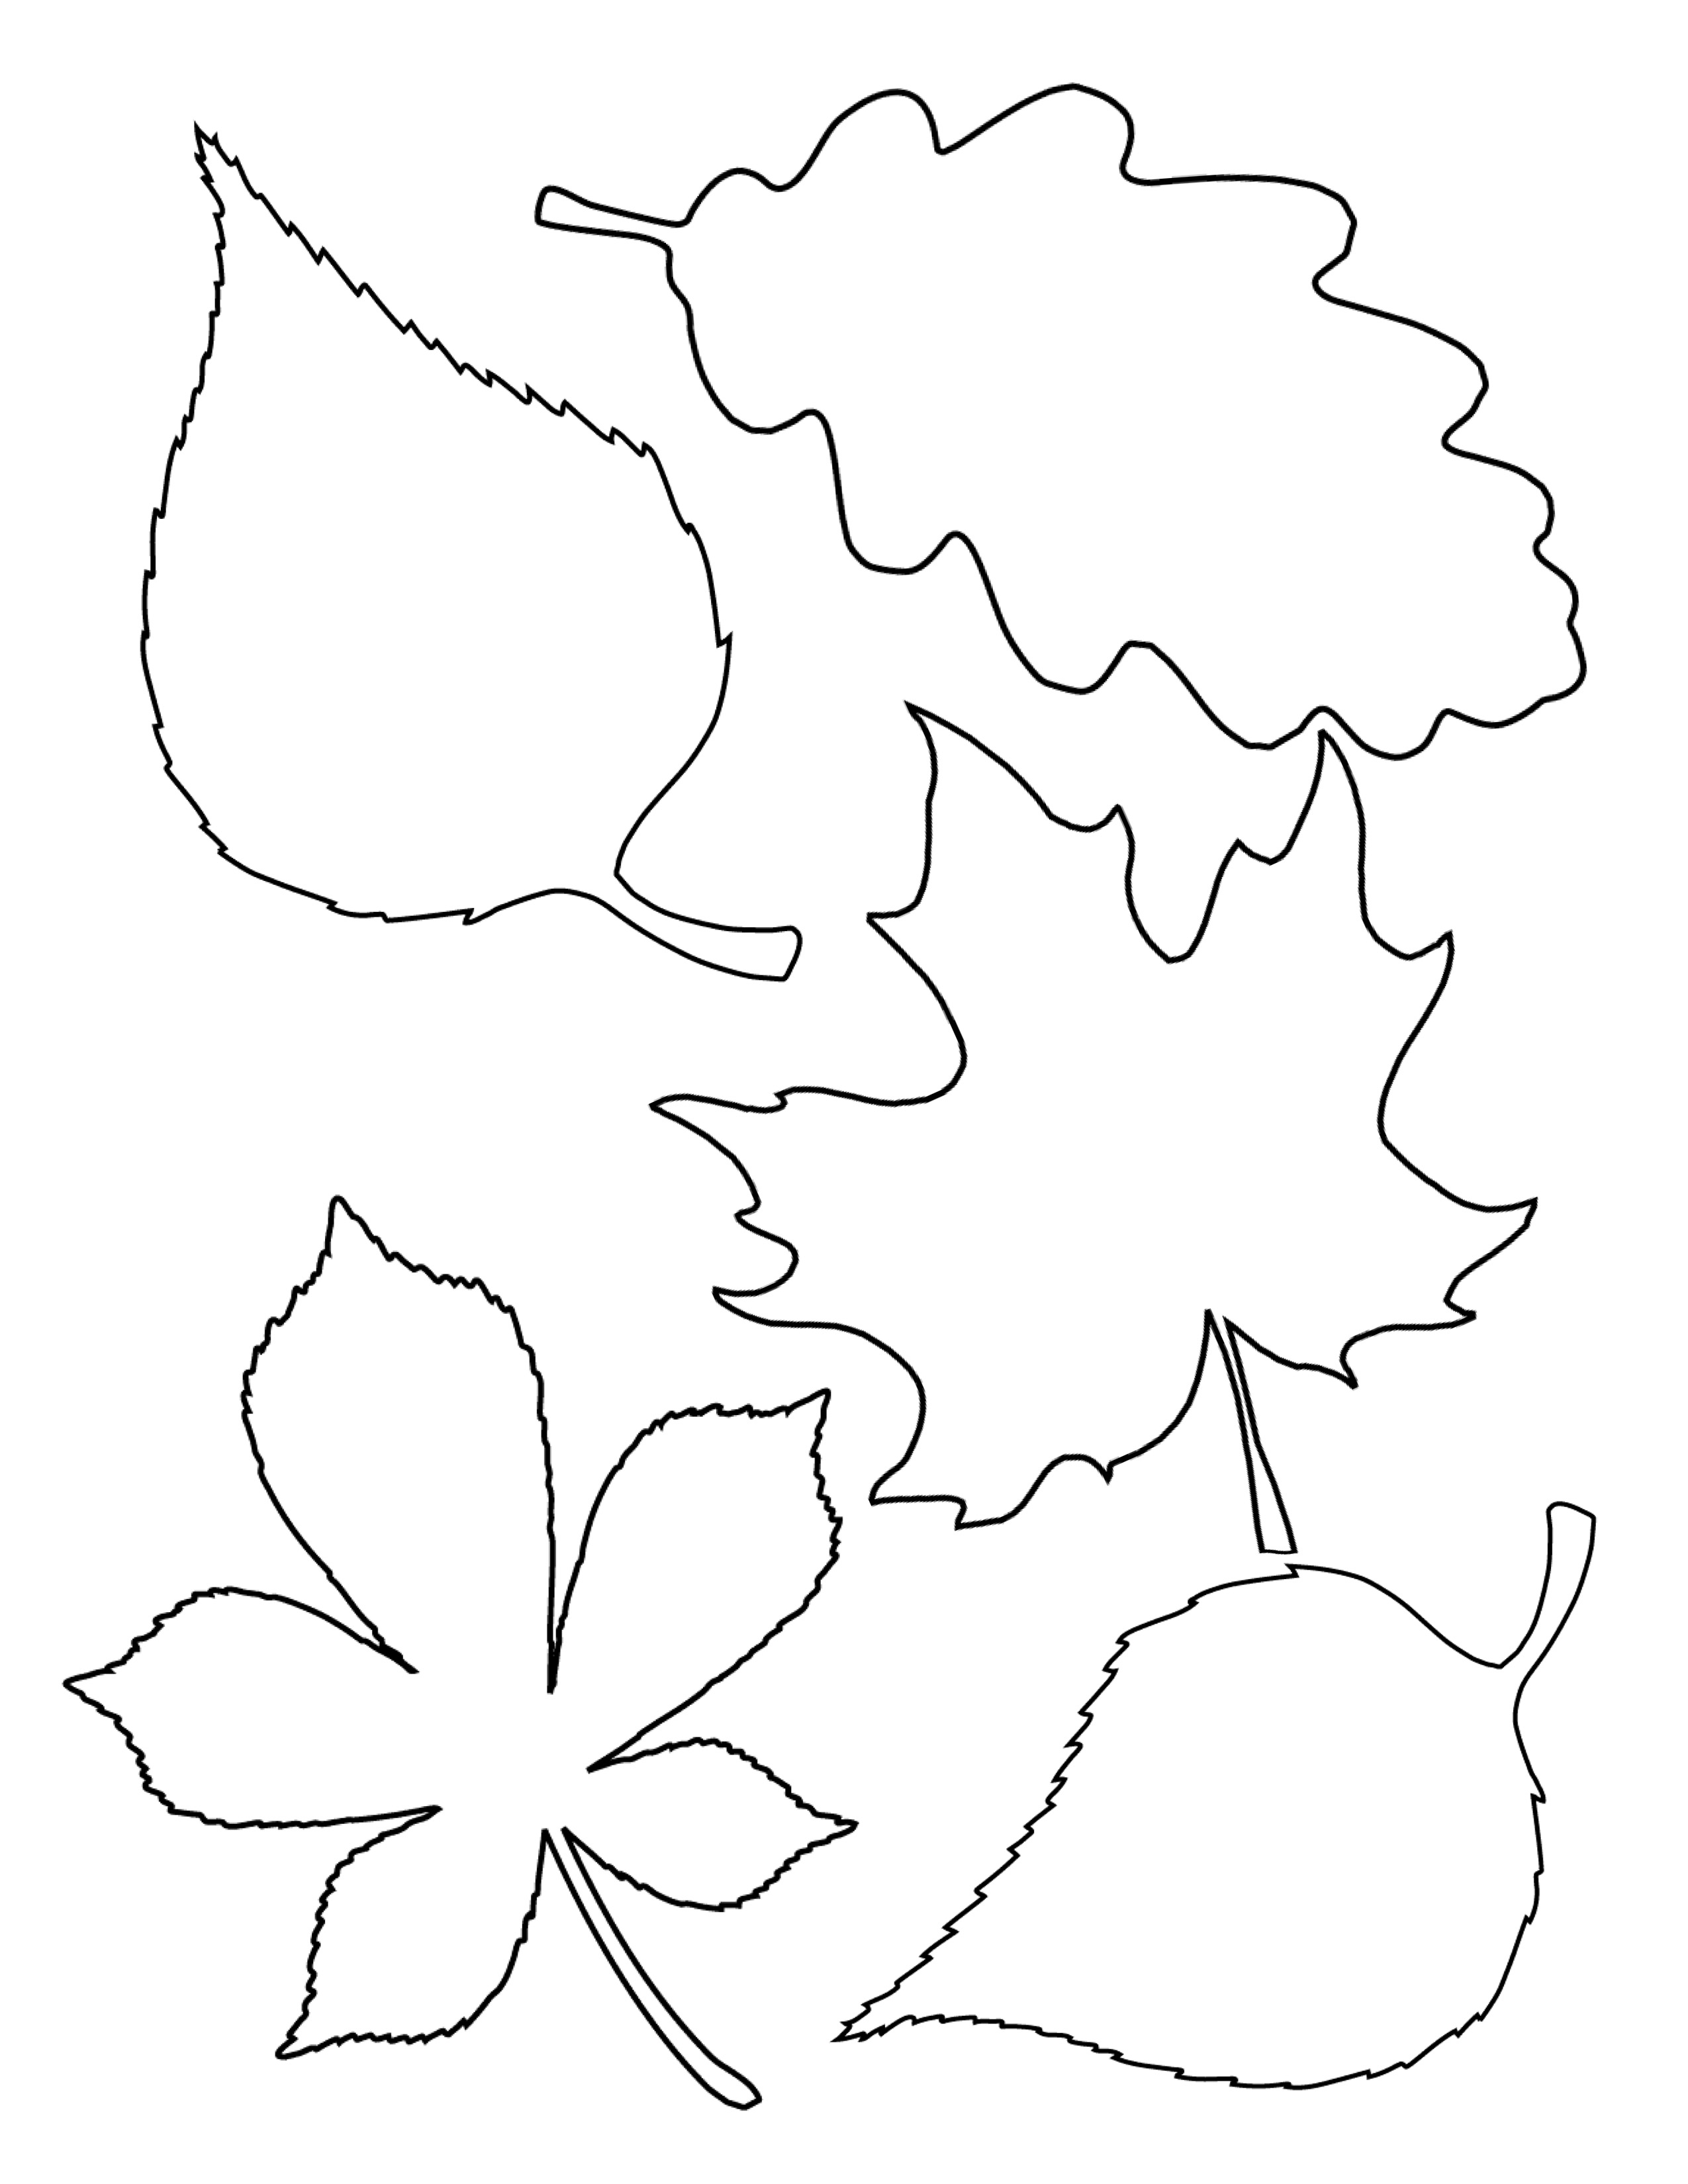 Free Leaf Template Download Free Clip Art Free Clip Art